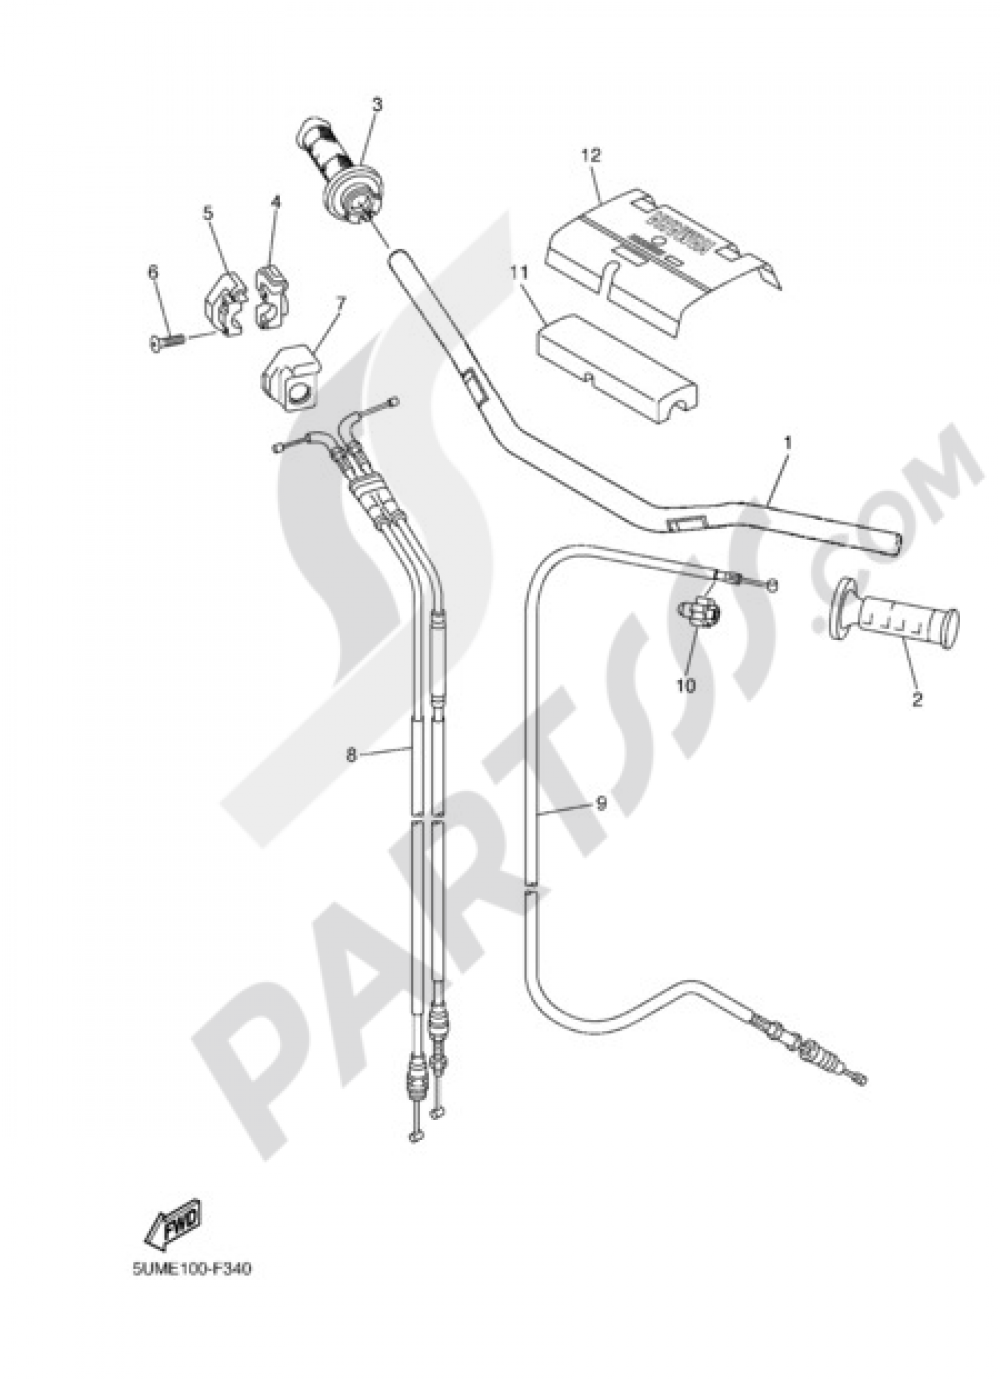 STEERING HANDLE & CABLE Yamaha WR250F 2010